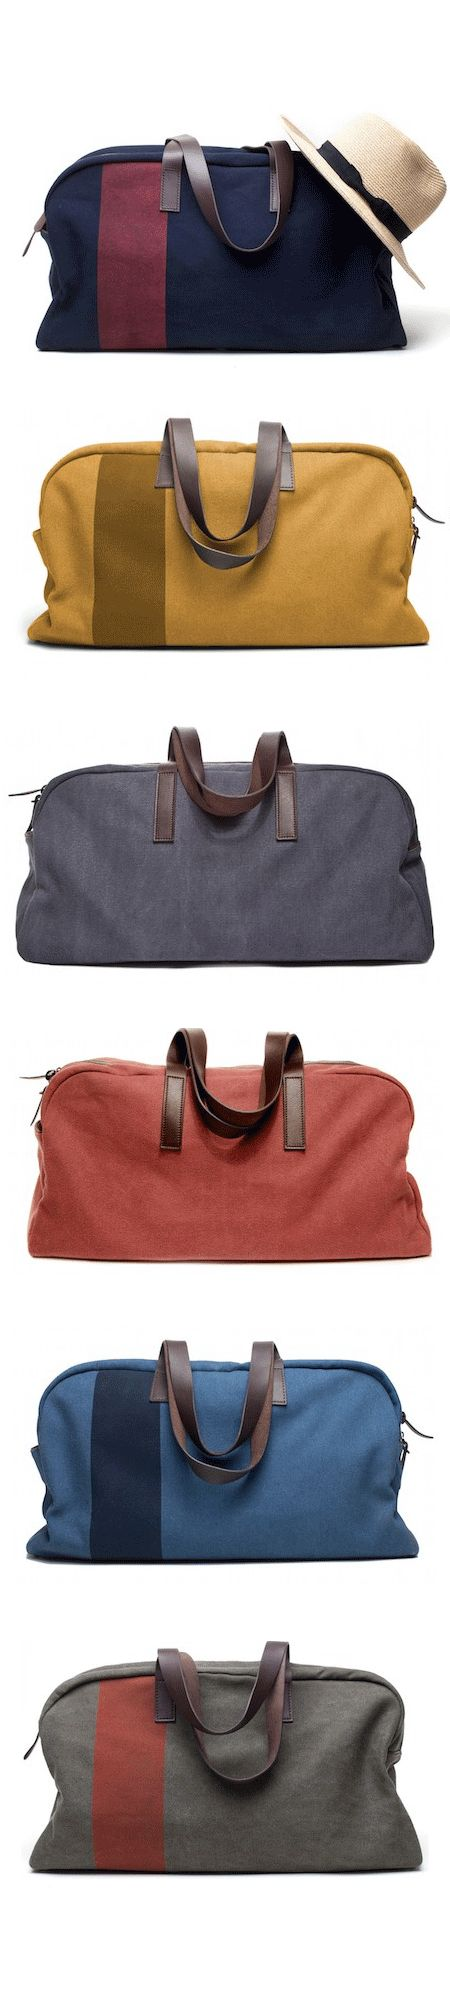 Love these awesome weekender bags!! Especially navy and red! http://rstyle.me/~12Rm8